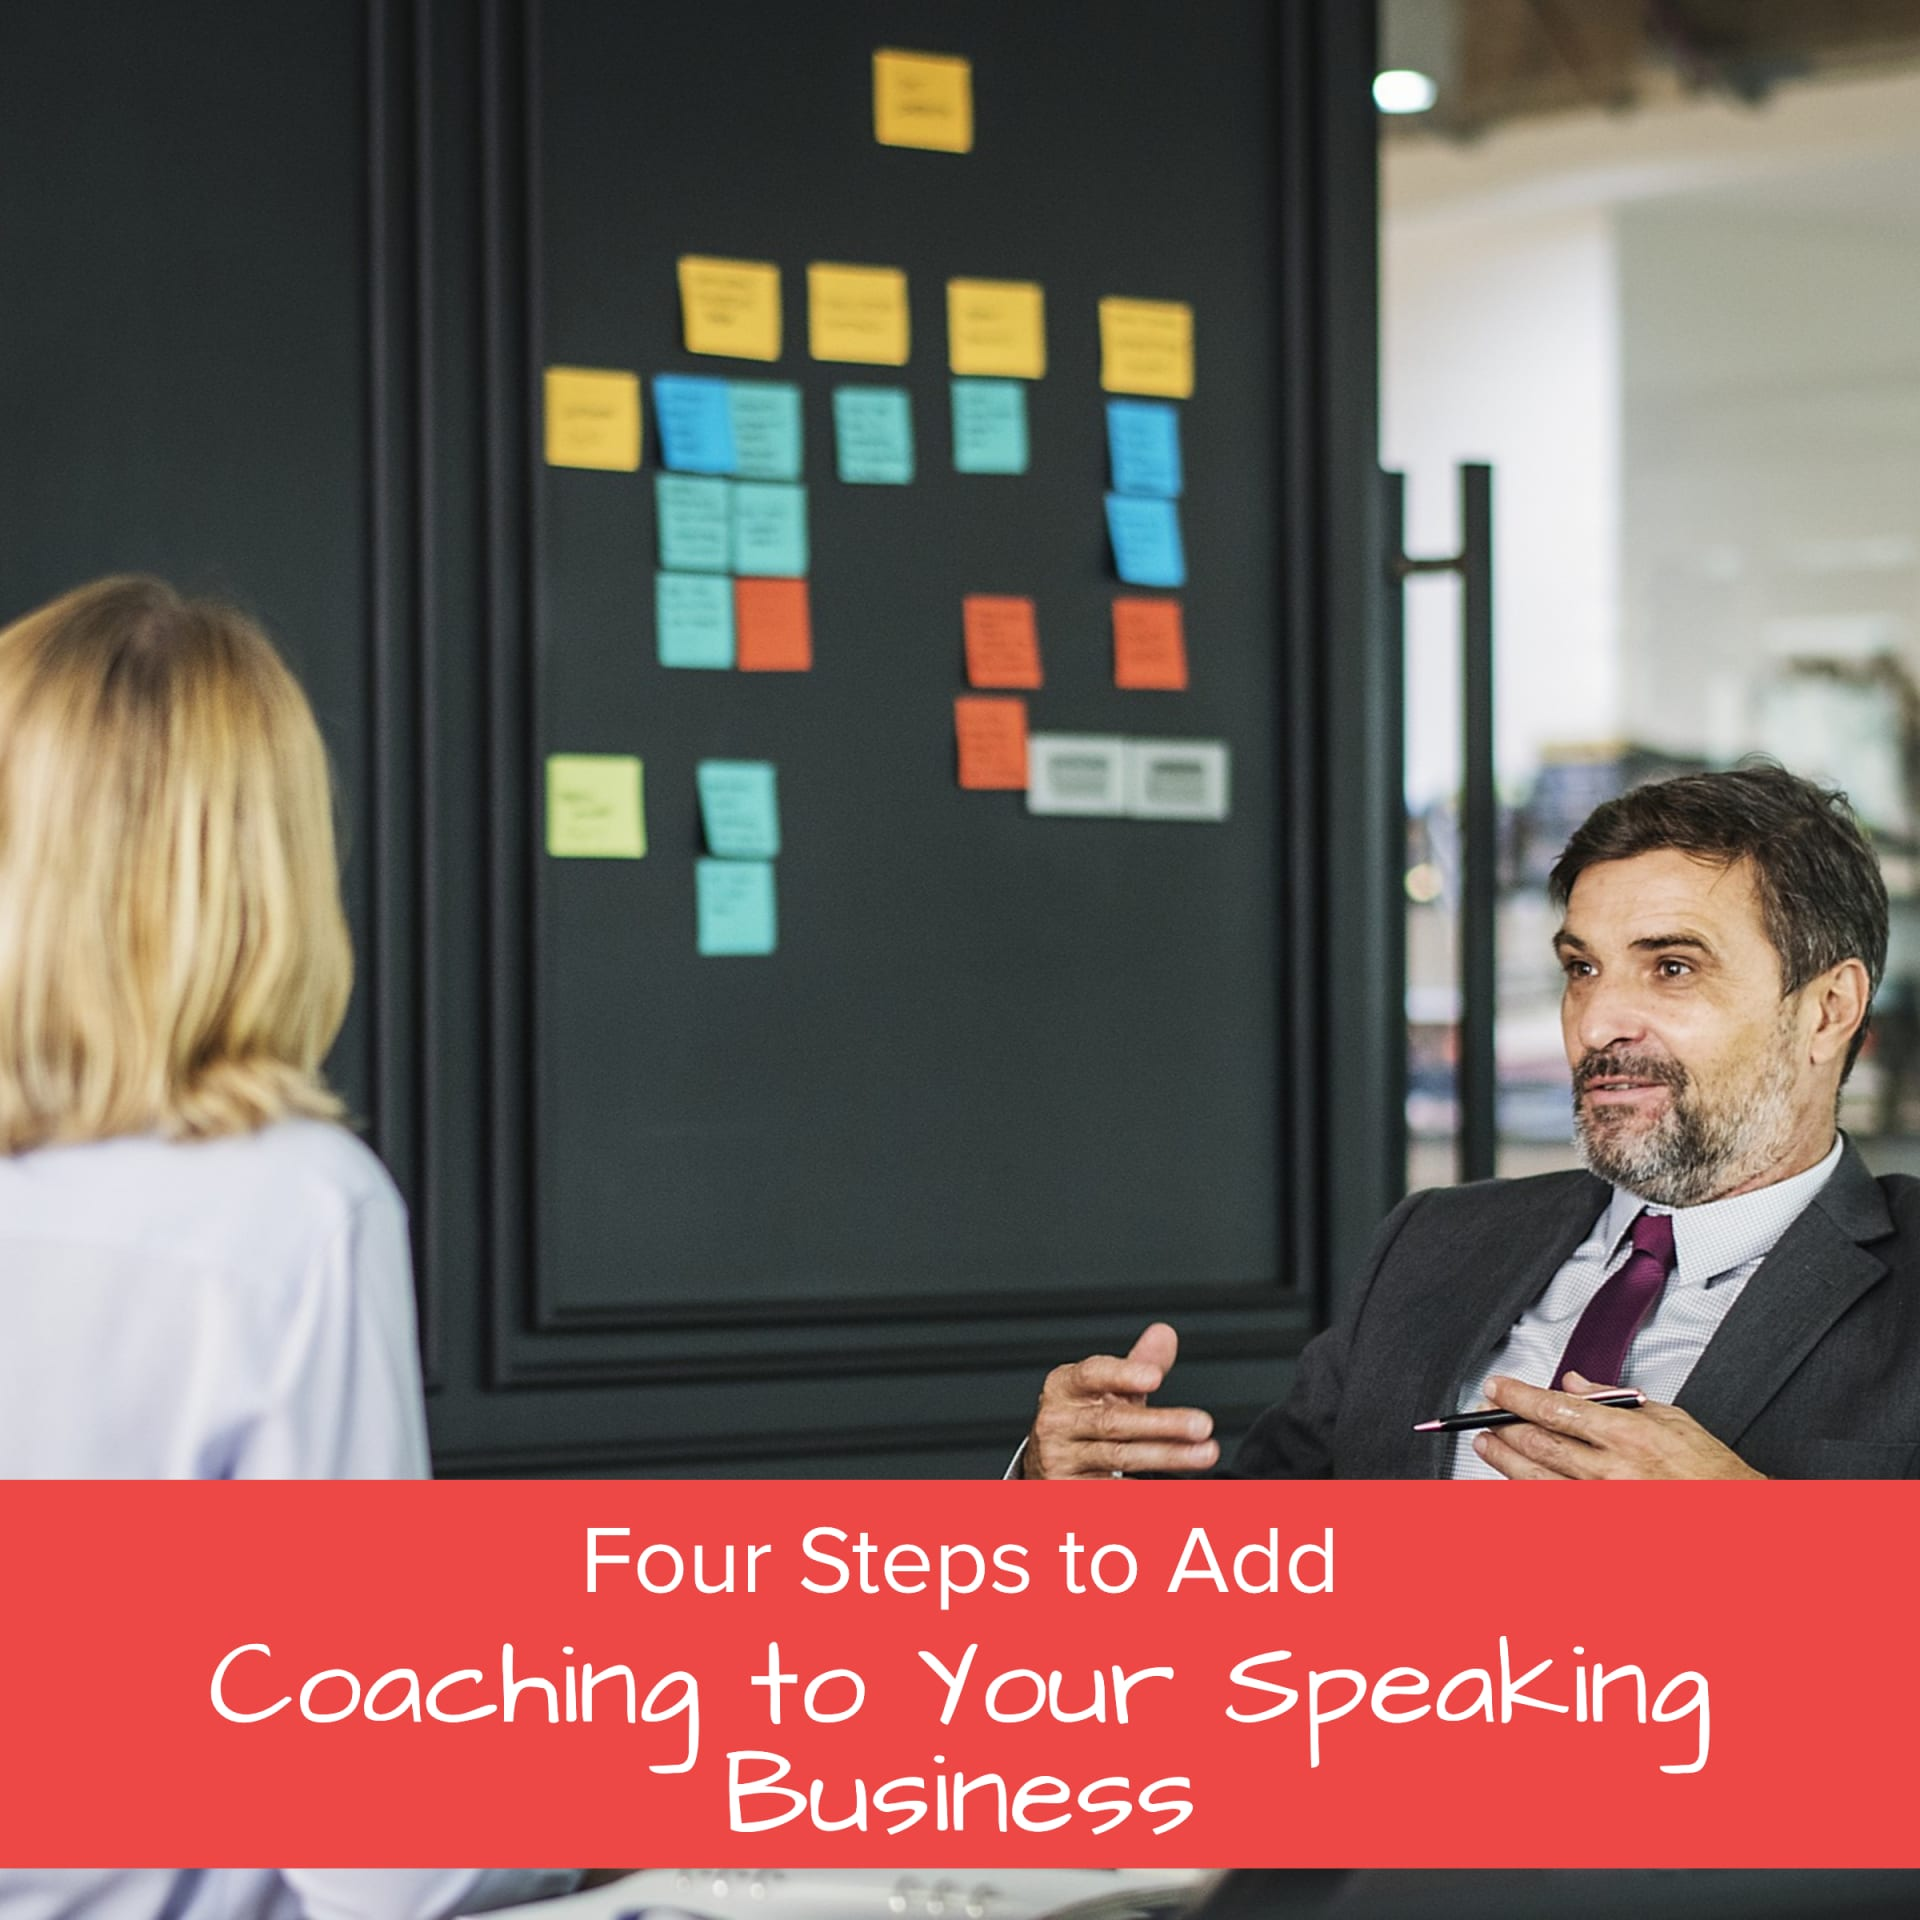 Four Steps to Add Coaching to Your Speaking Business - Jane Atkinson